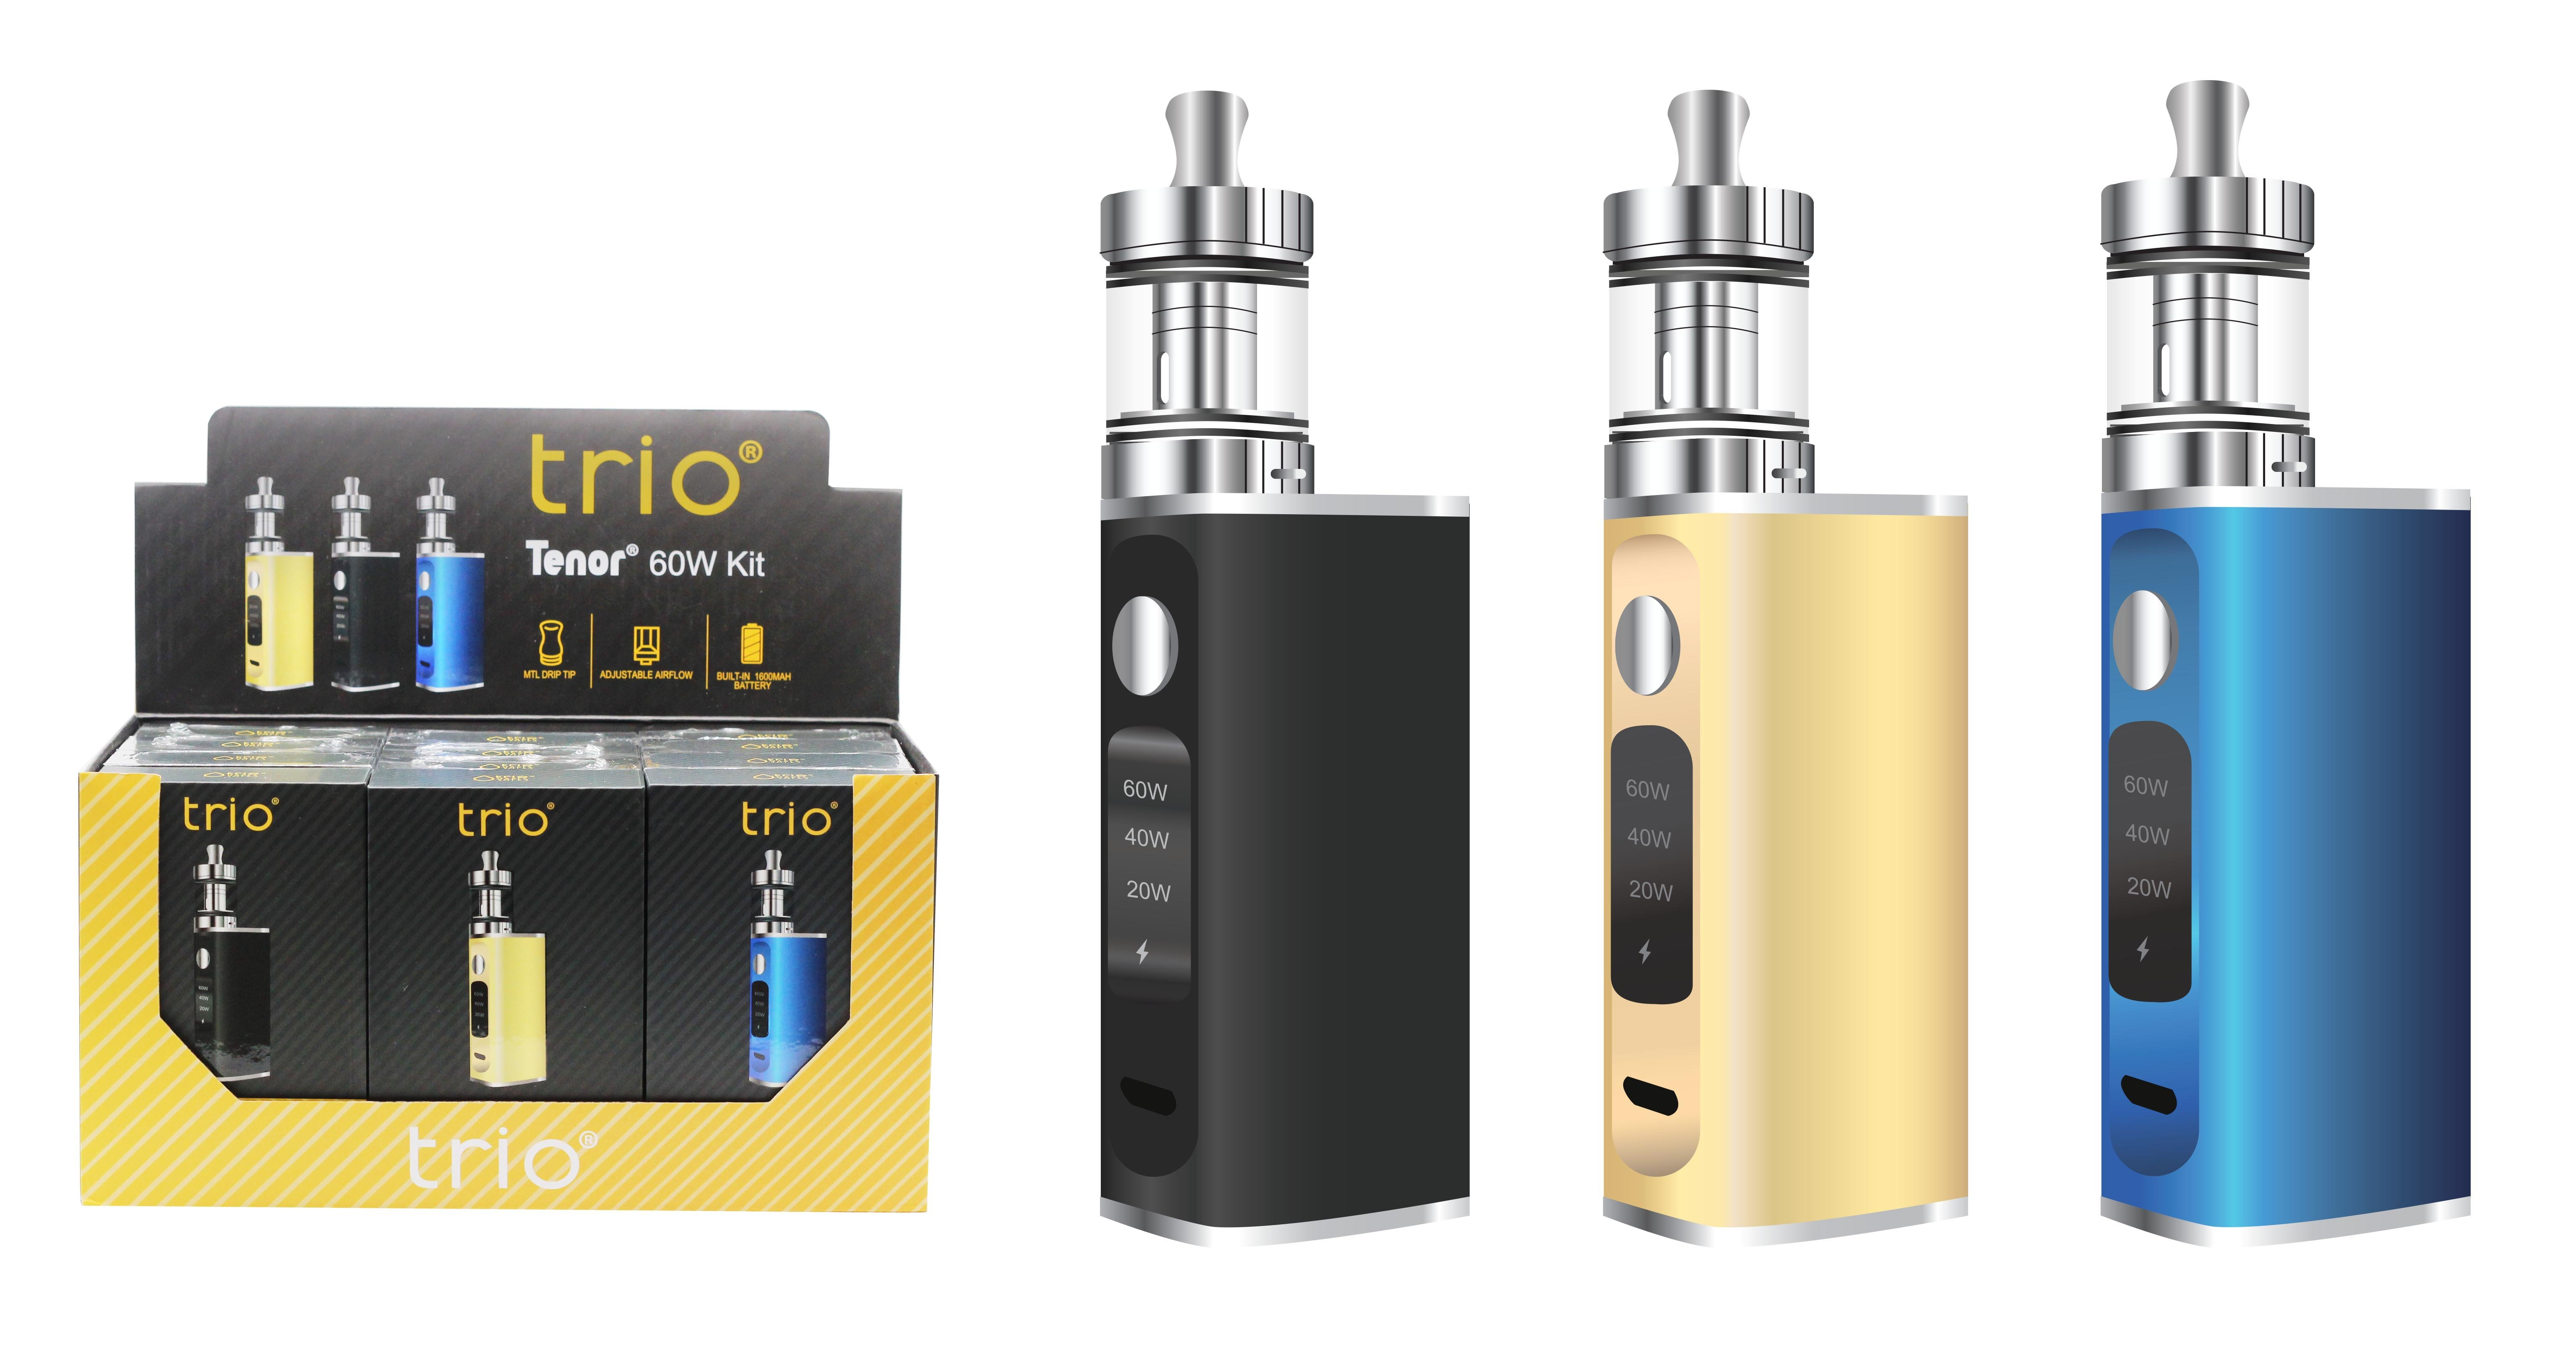 Trio Tenor Kit 60W